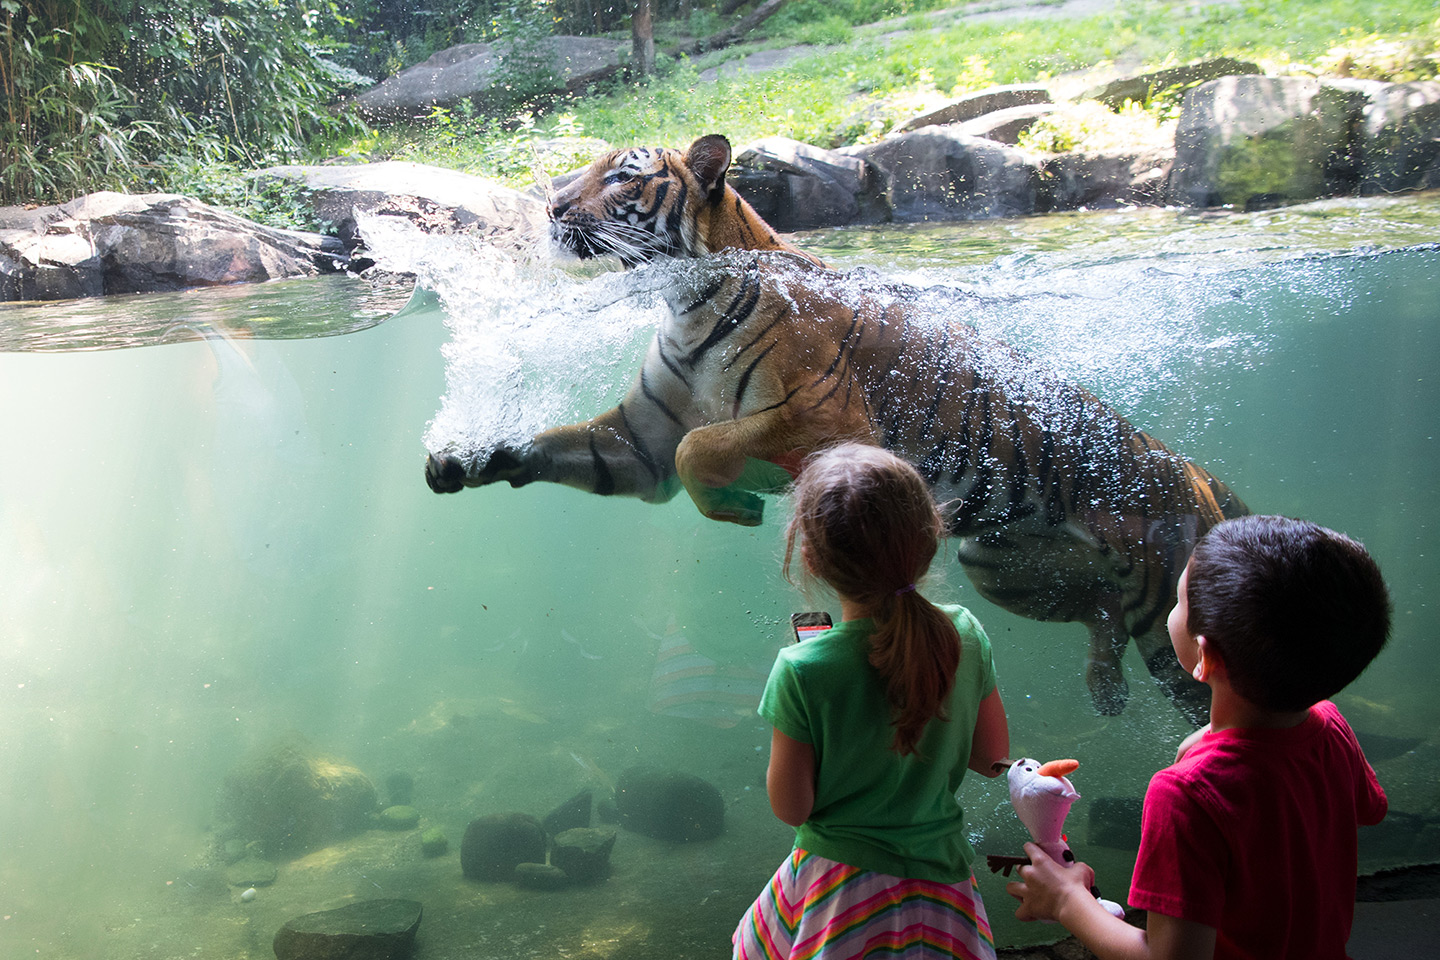 A tiger swims behind exhibit glass while two children look on